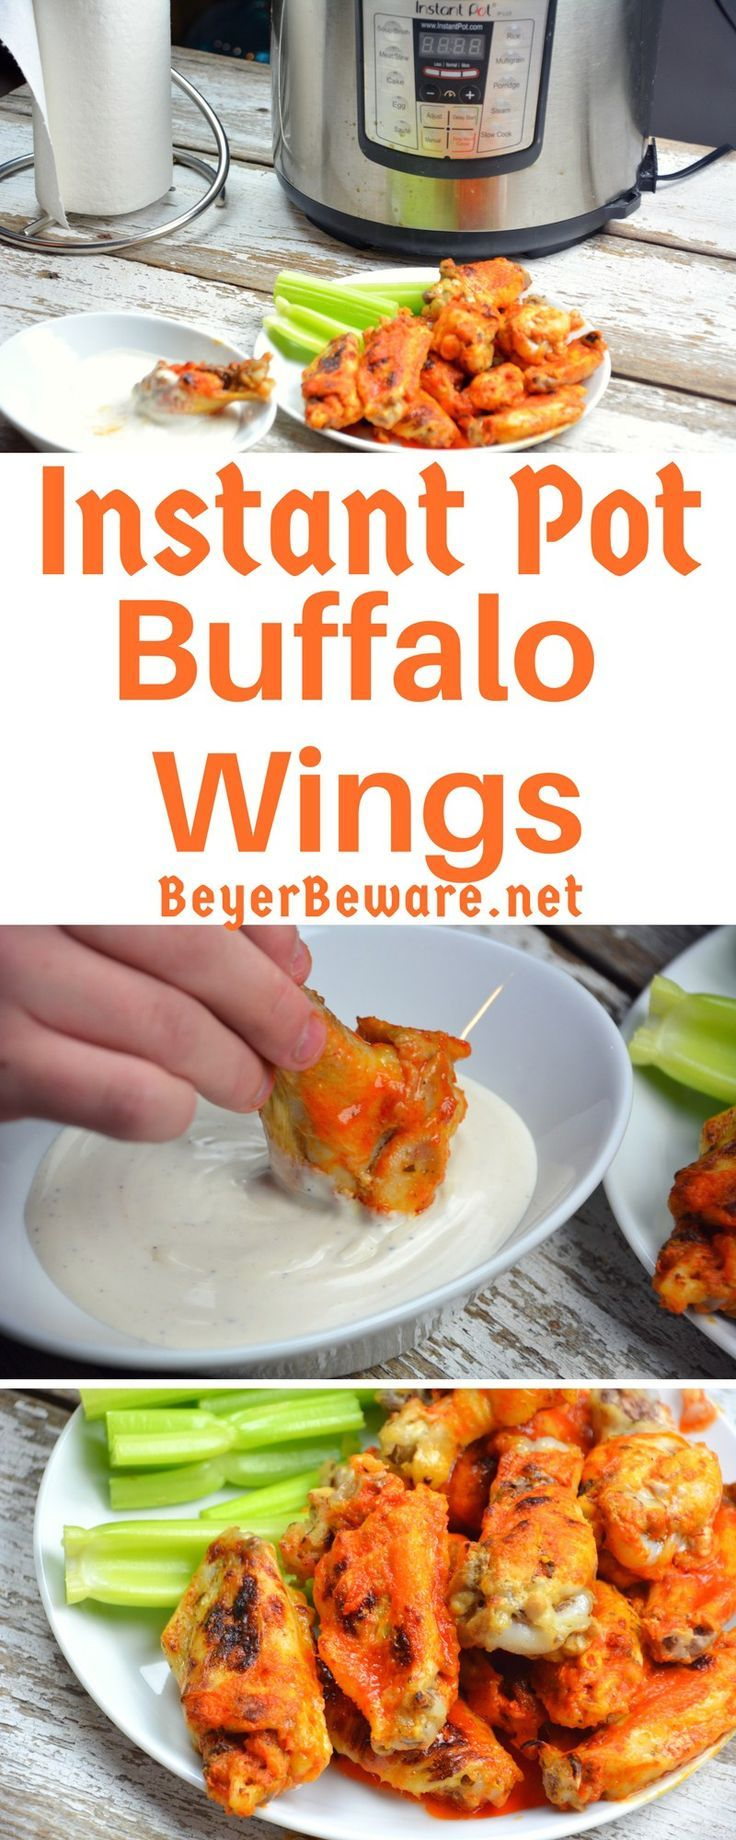 These Instant Pot Buffalo wings were quick to make chicken buffalo wings yet resulted in fall of the bone tenderness all while being drenched in an easy butter and Franks hot sauce buffalo sauce. #instantpot #buffalochicken  #keto #lowcarb